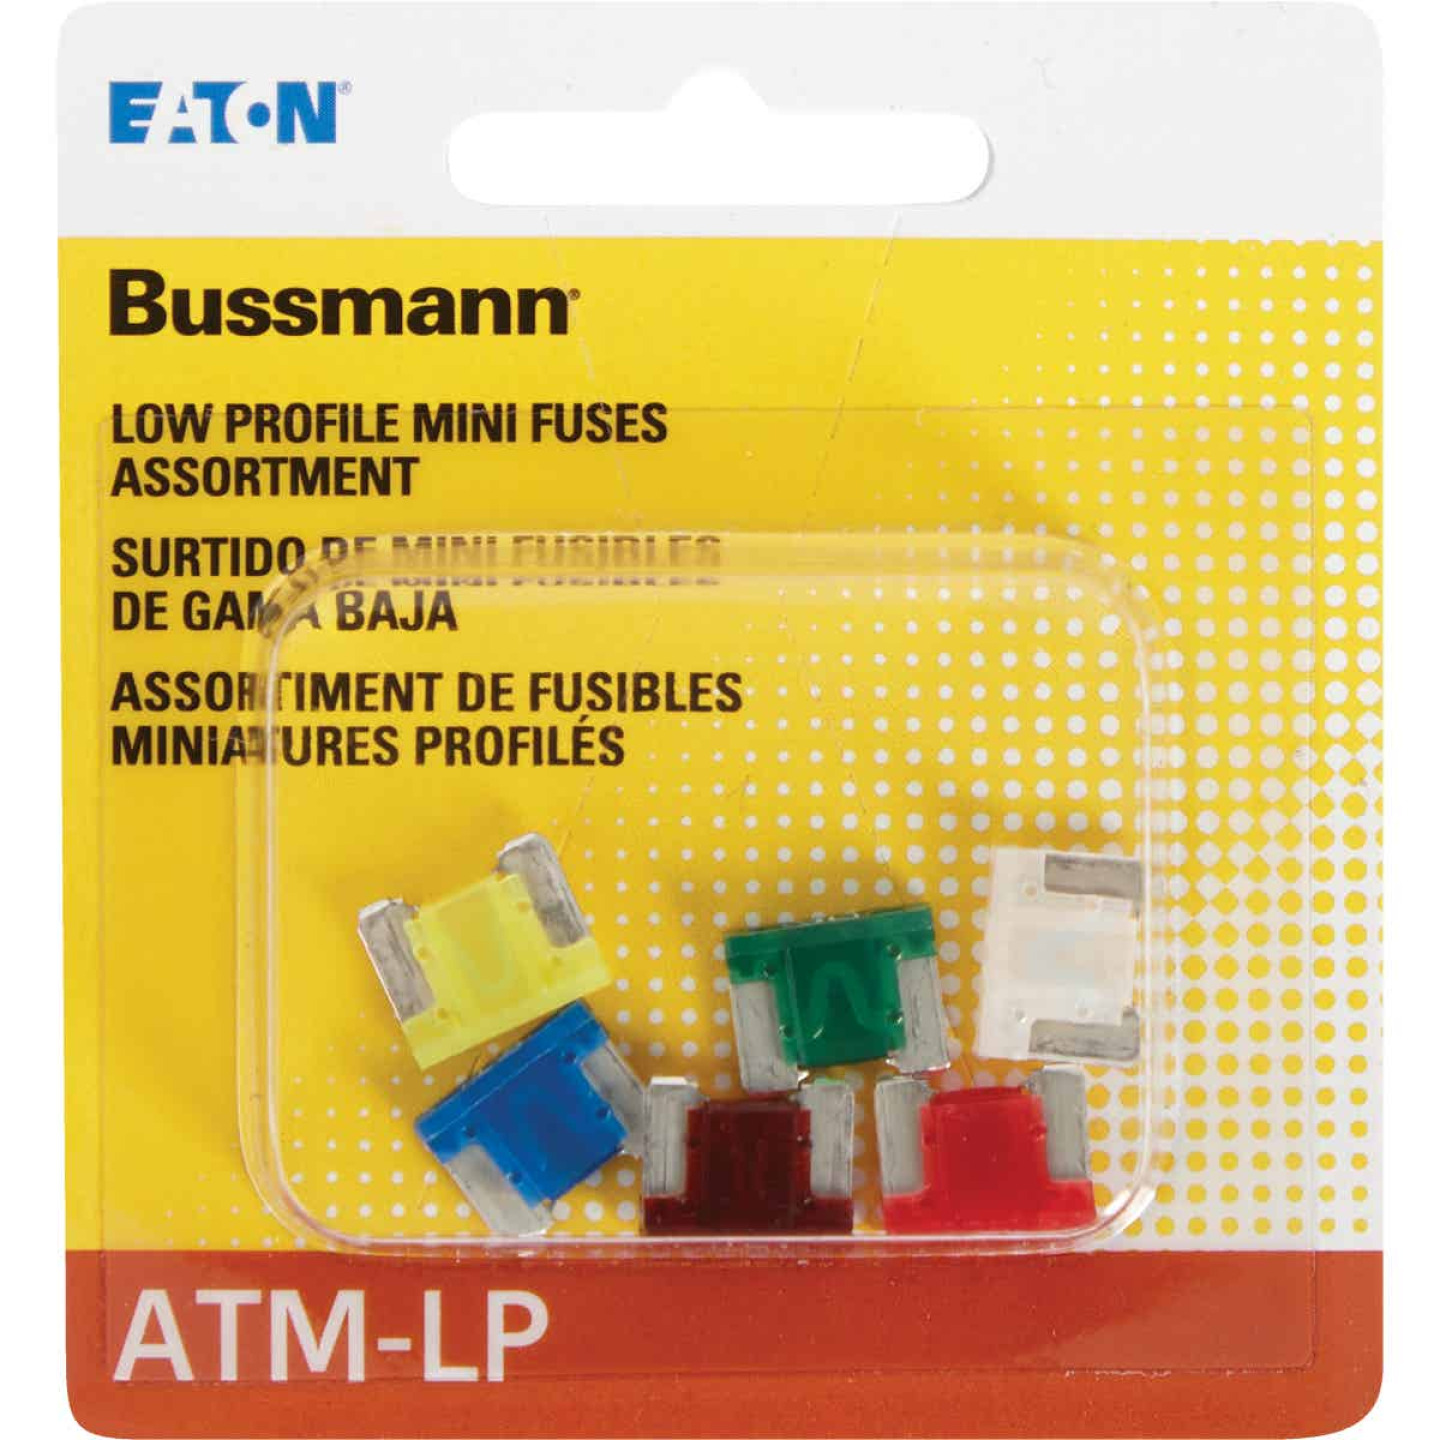 Bussmann ATM Low Profile Mini Fuse Assortment (6-Piece) Image 2